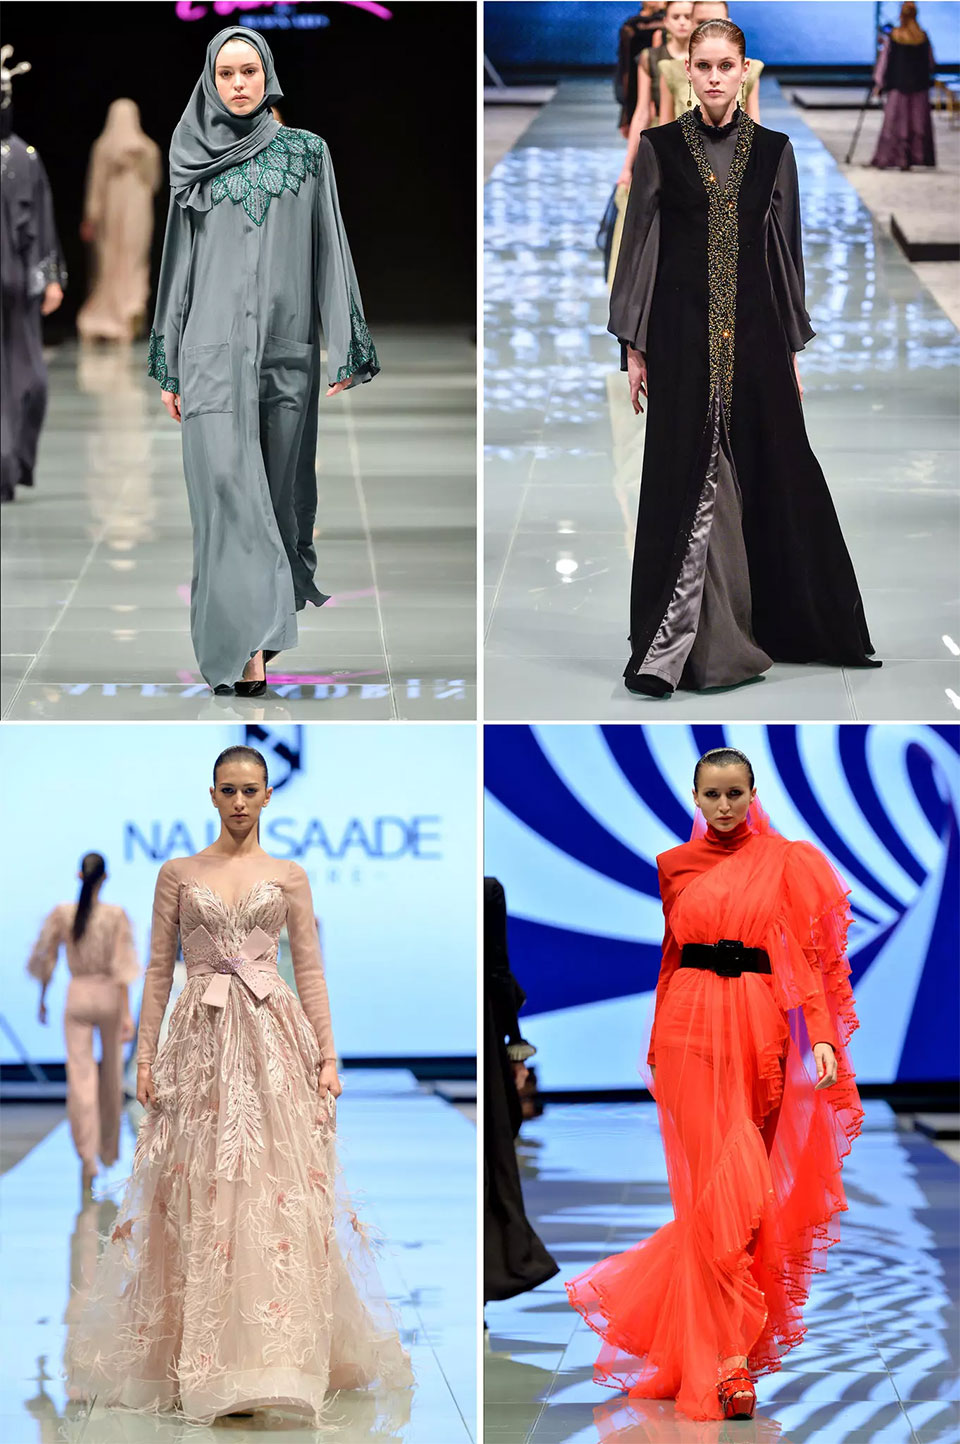 Saudi Arabia Just Had Its First Fashion Week